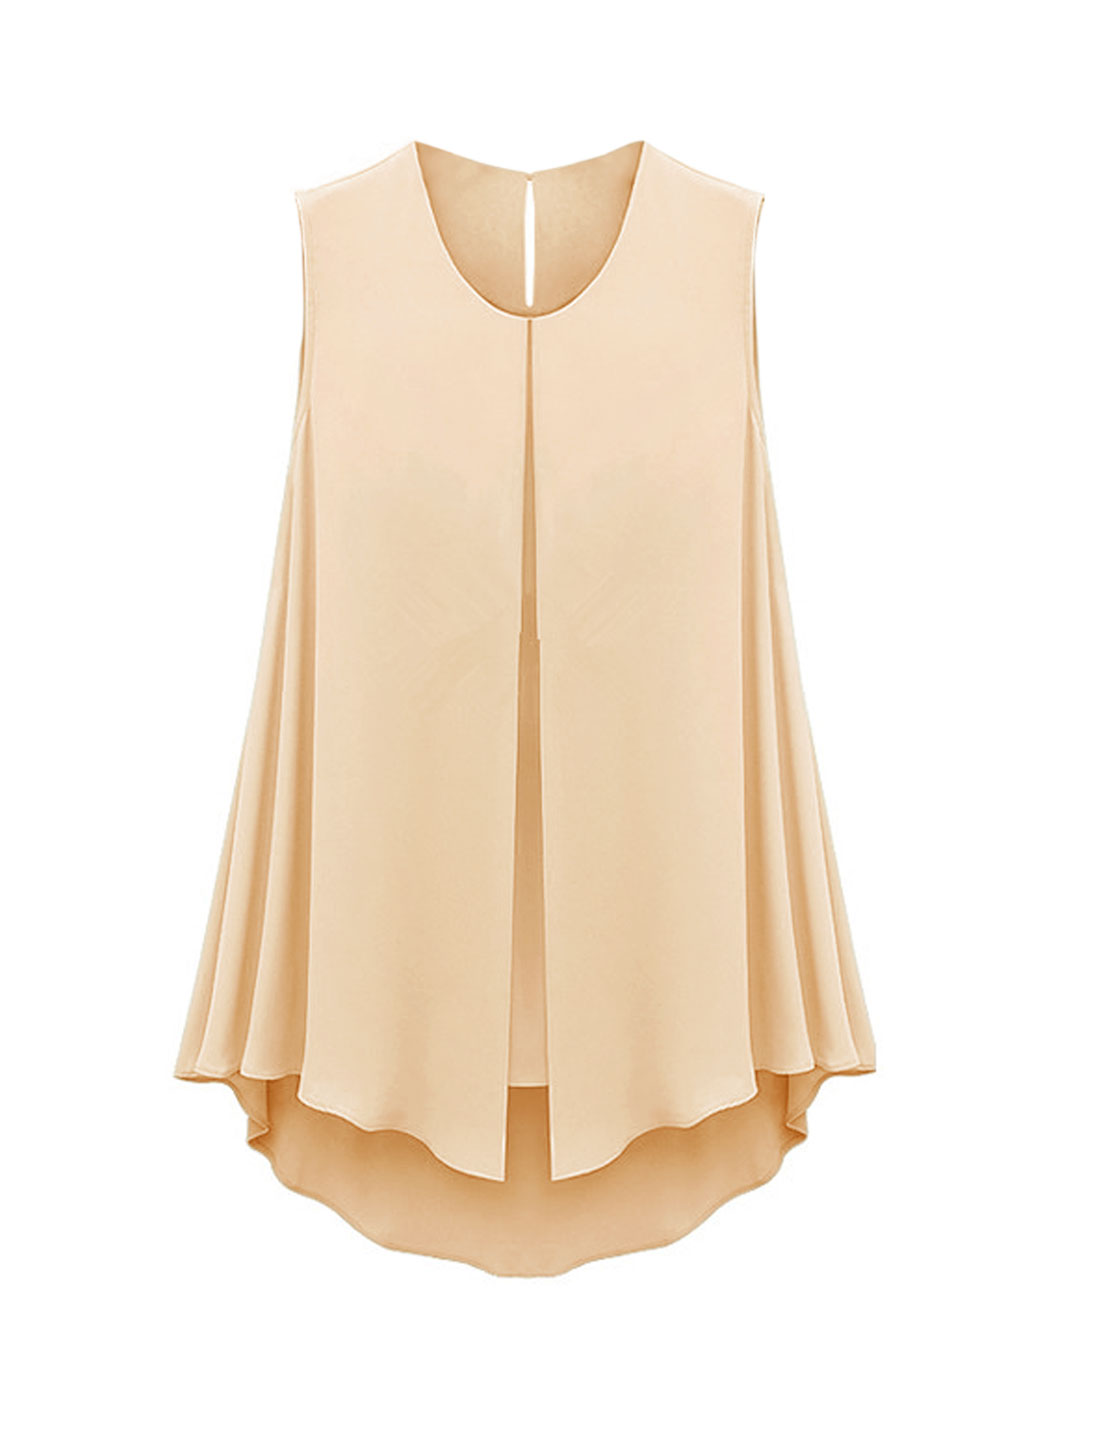 Ladies Round Neck Layered Asymmetric Hem Summer Chiffon Blouse Pale Pink S